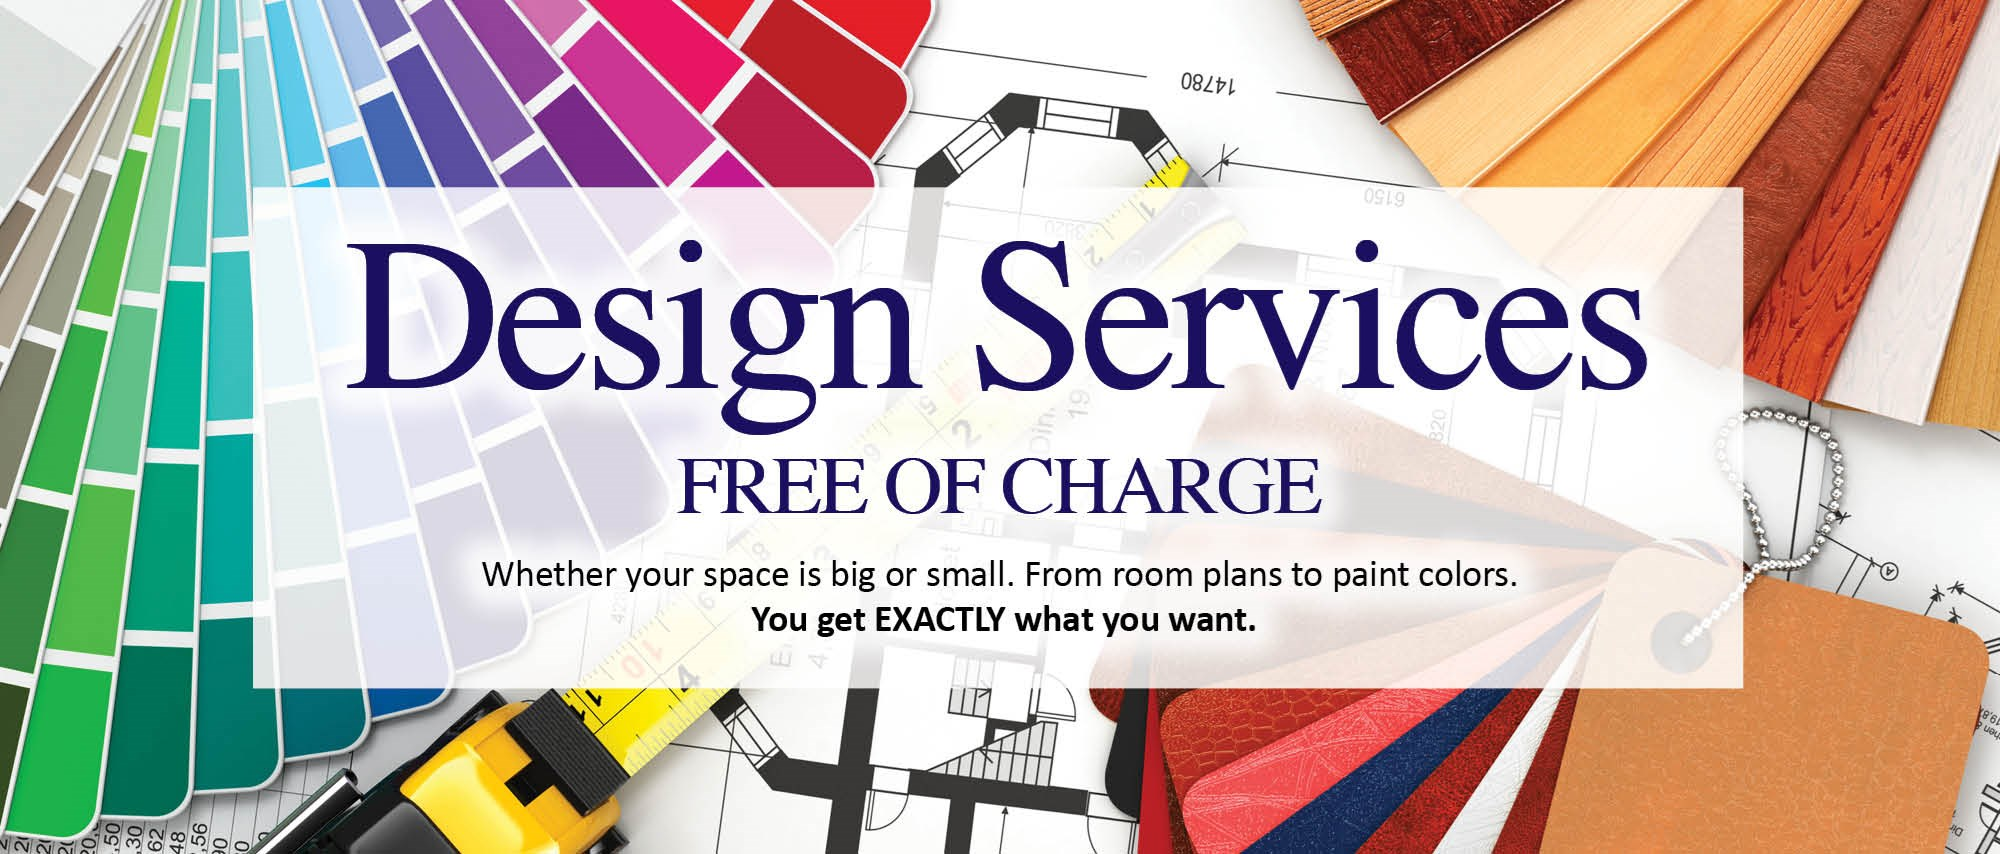 design services - completely FREE!